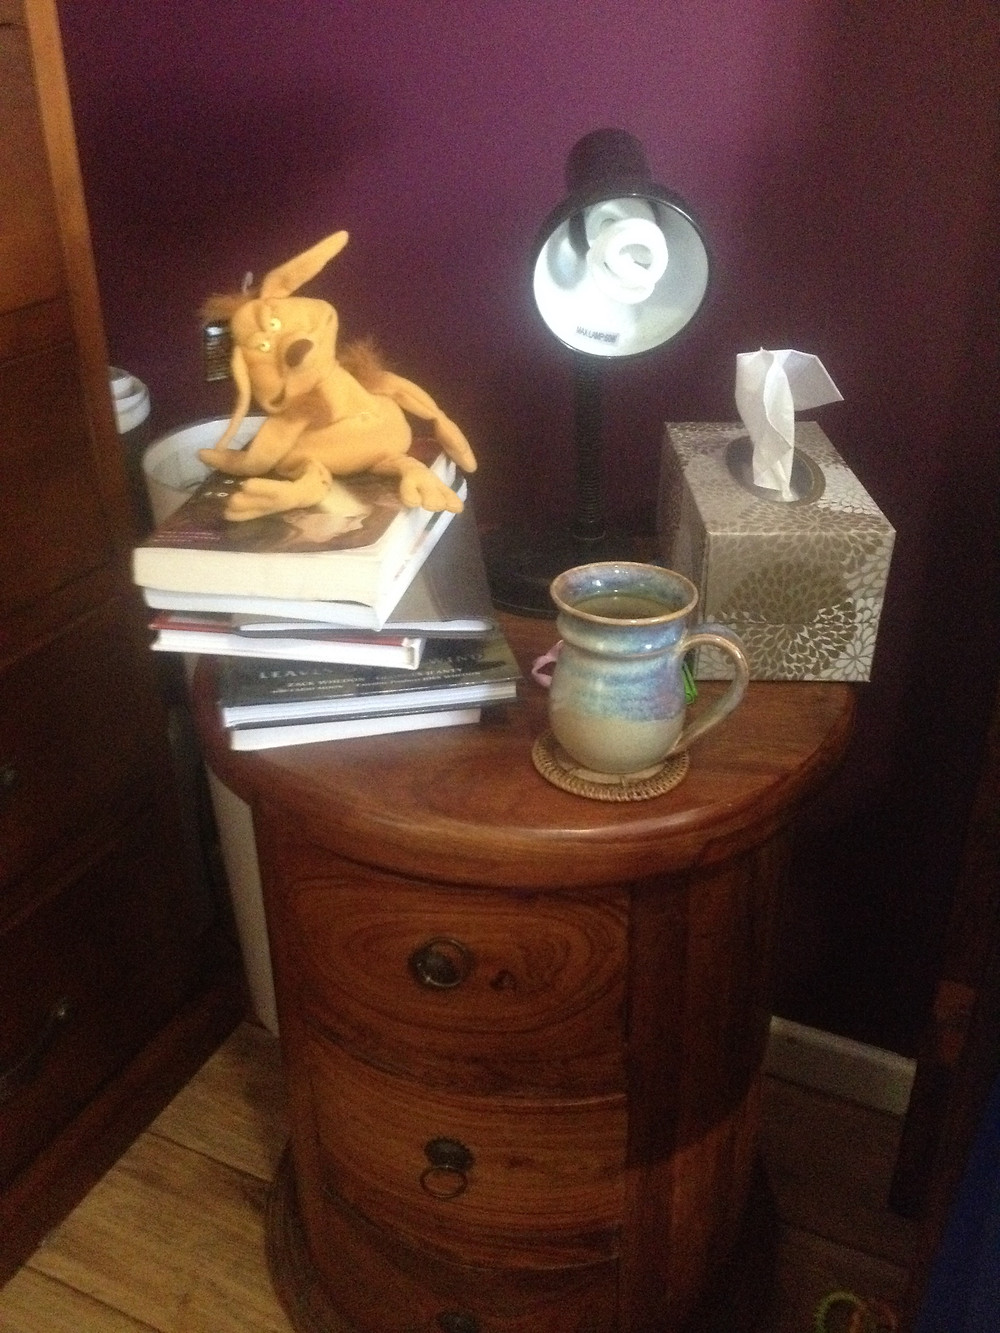 Salacious Crumb presides over my TBR pile.